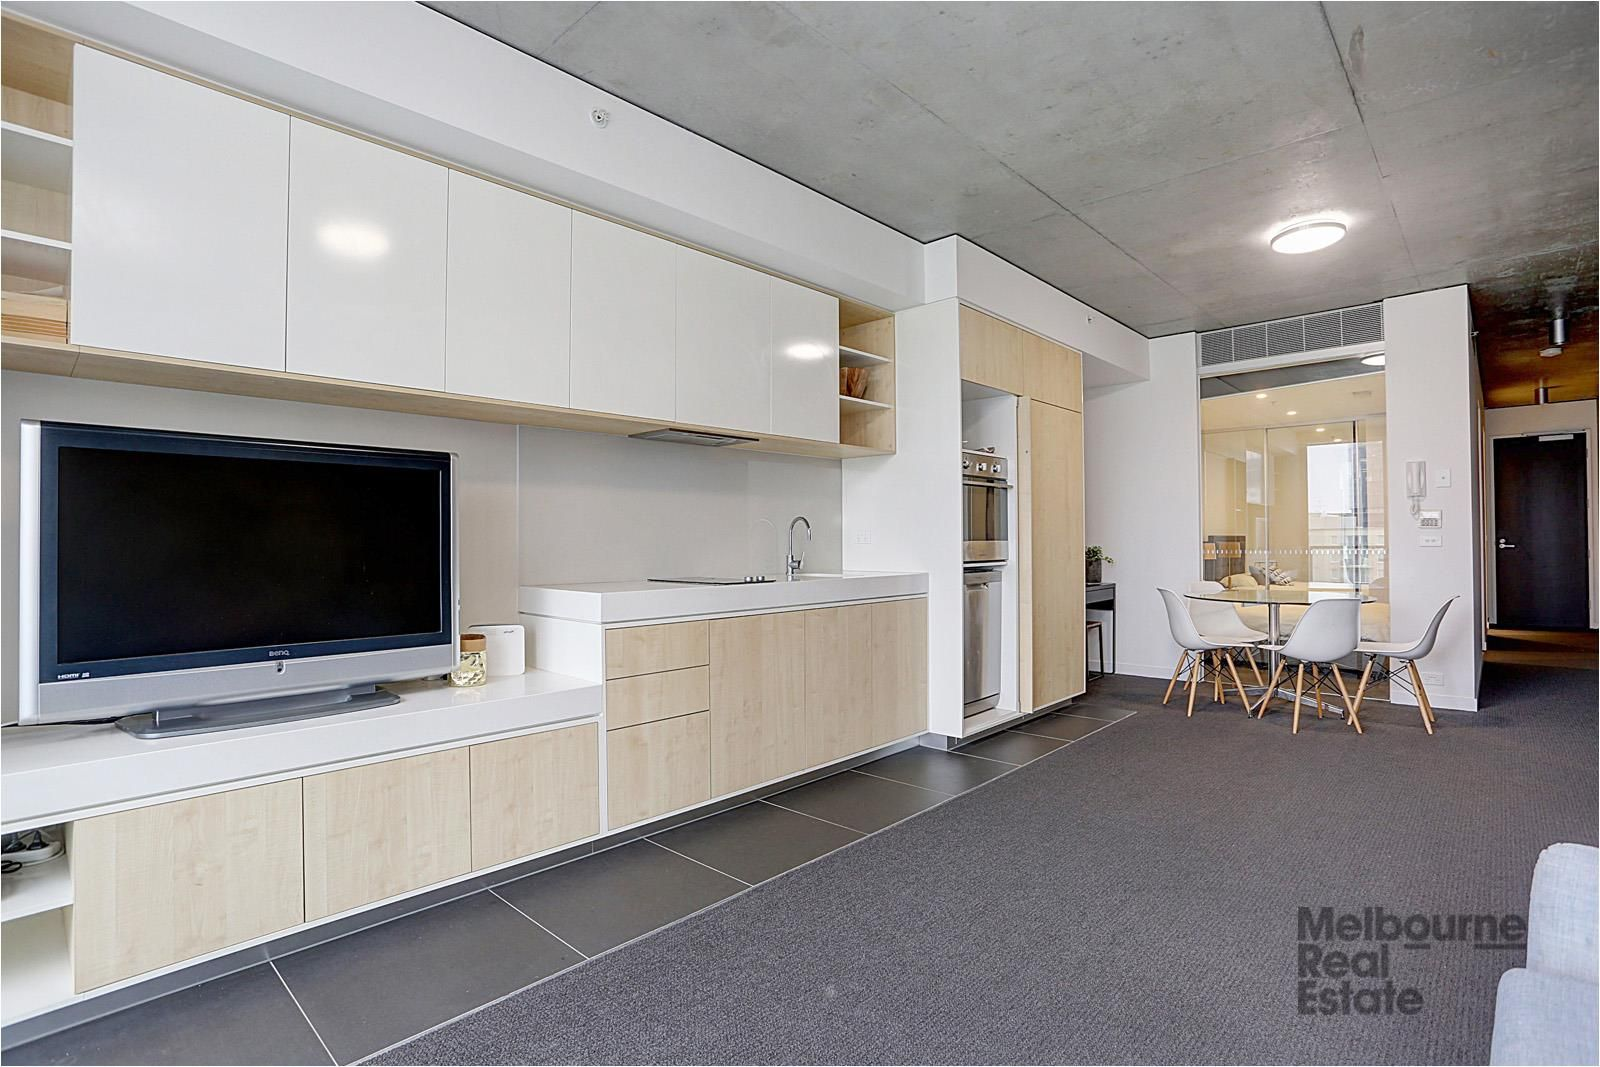 802/33 Claremont Street, South Yarra VIC 3141, Image 1